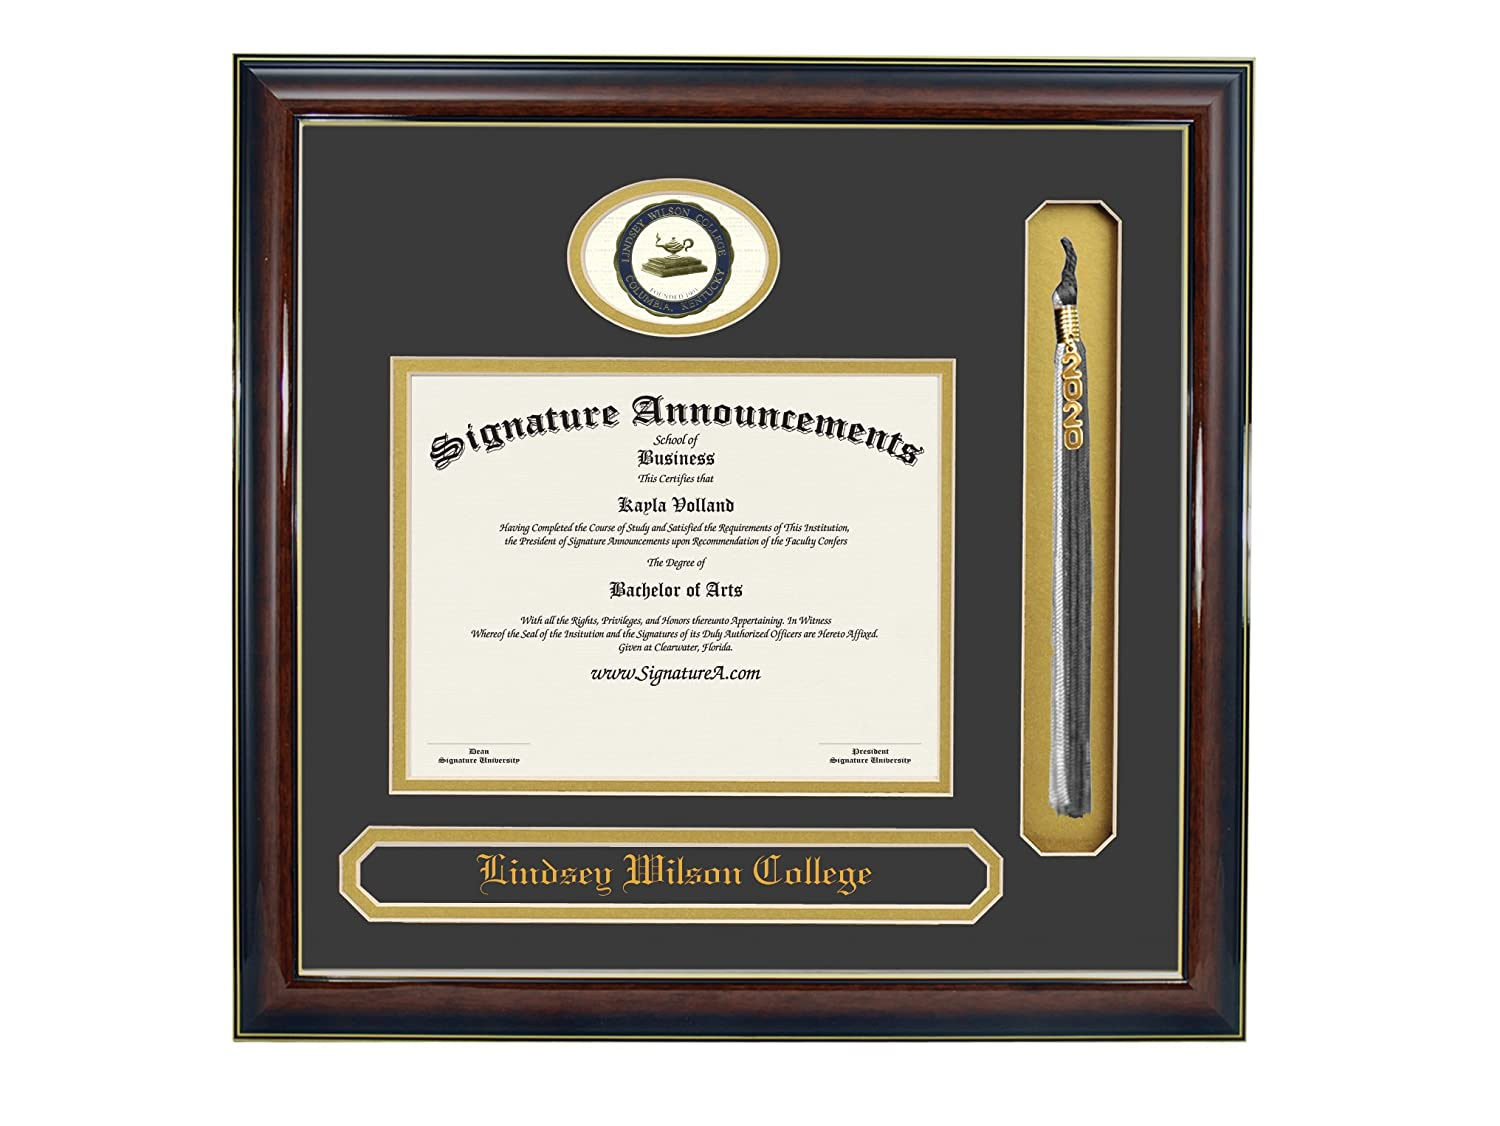 Signature Announcements Lindsey-Wilson-College Sculpted Foil Seal Name /& Tassel Graduation Diploma Frame 16 x 16 Gold Accent Gloss Mahogany